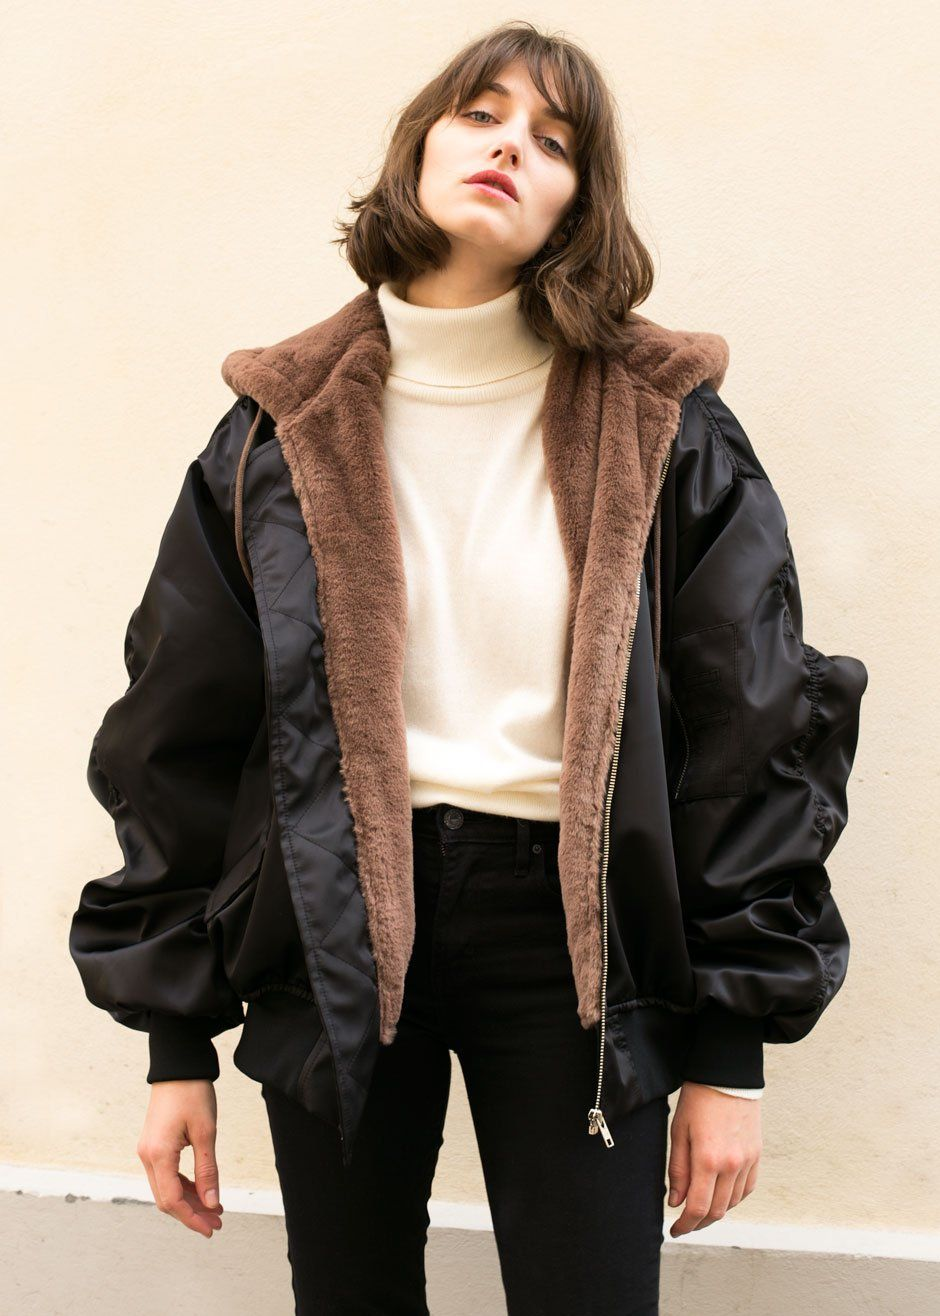 Faux Fur Hooded Bomber Jacket The Frankie Shop Bomber Jacket Hooded Bomber Jacket Jackets [ 1316 x 940 Pixel ]